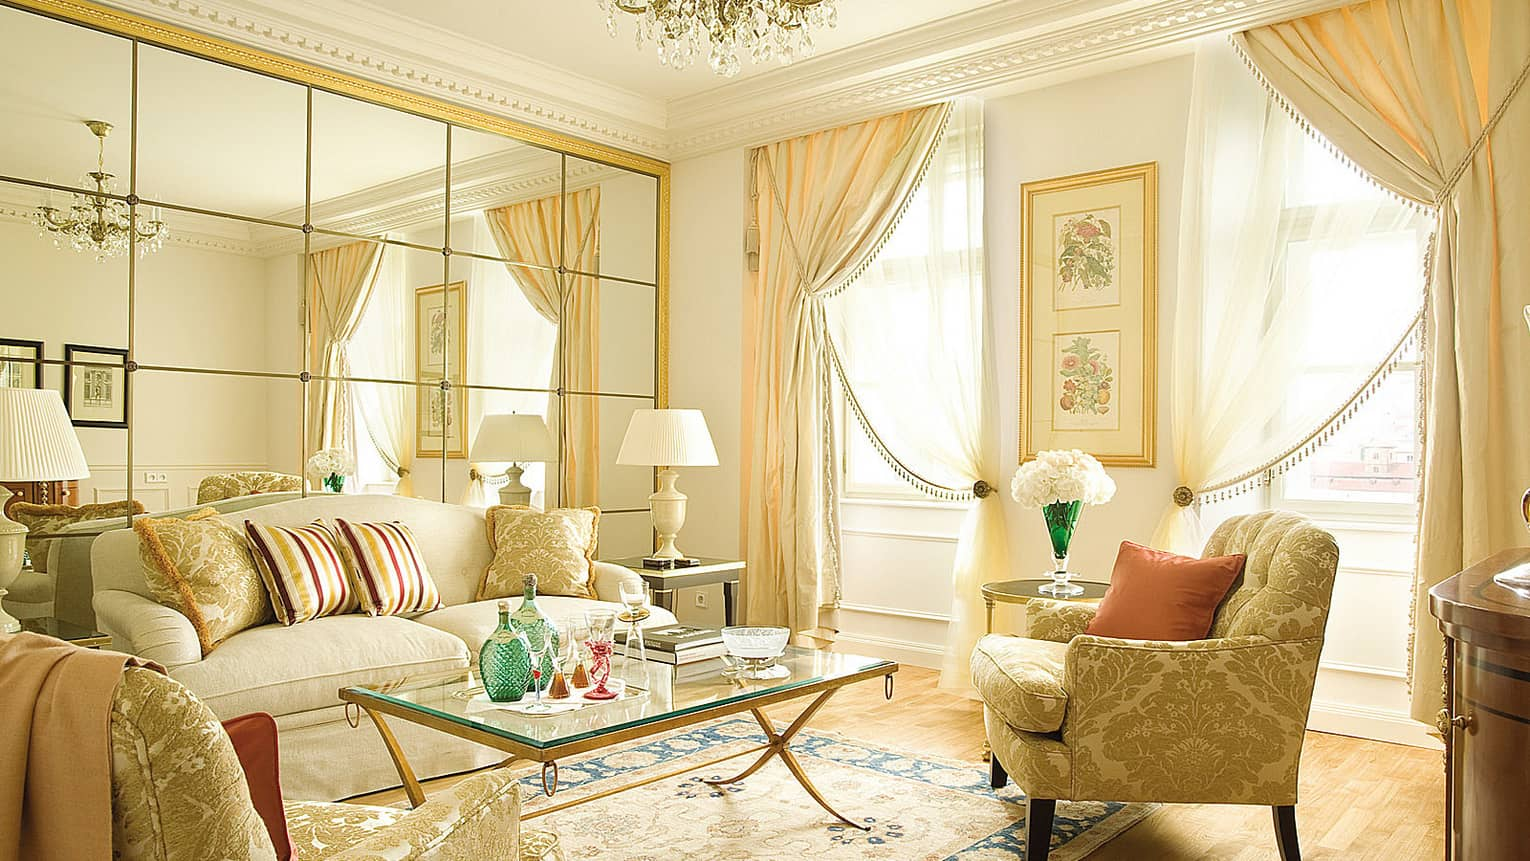 Duplex Suite living room sofas and chairs with gold accents, mirror panel wall with gold frame, bright windows, curtains